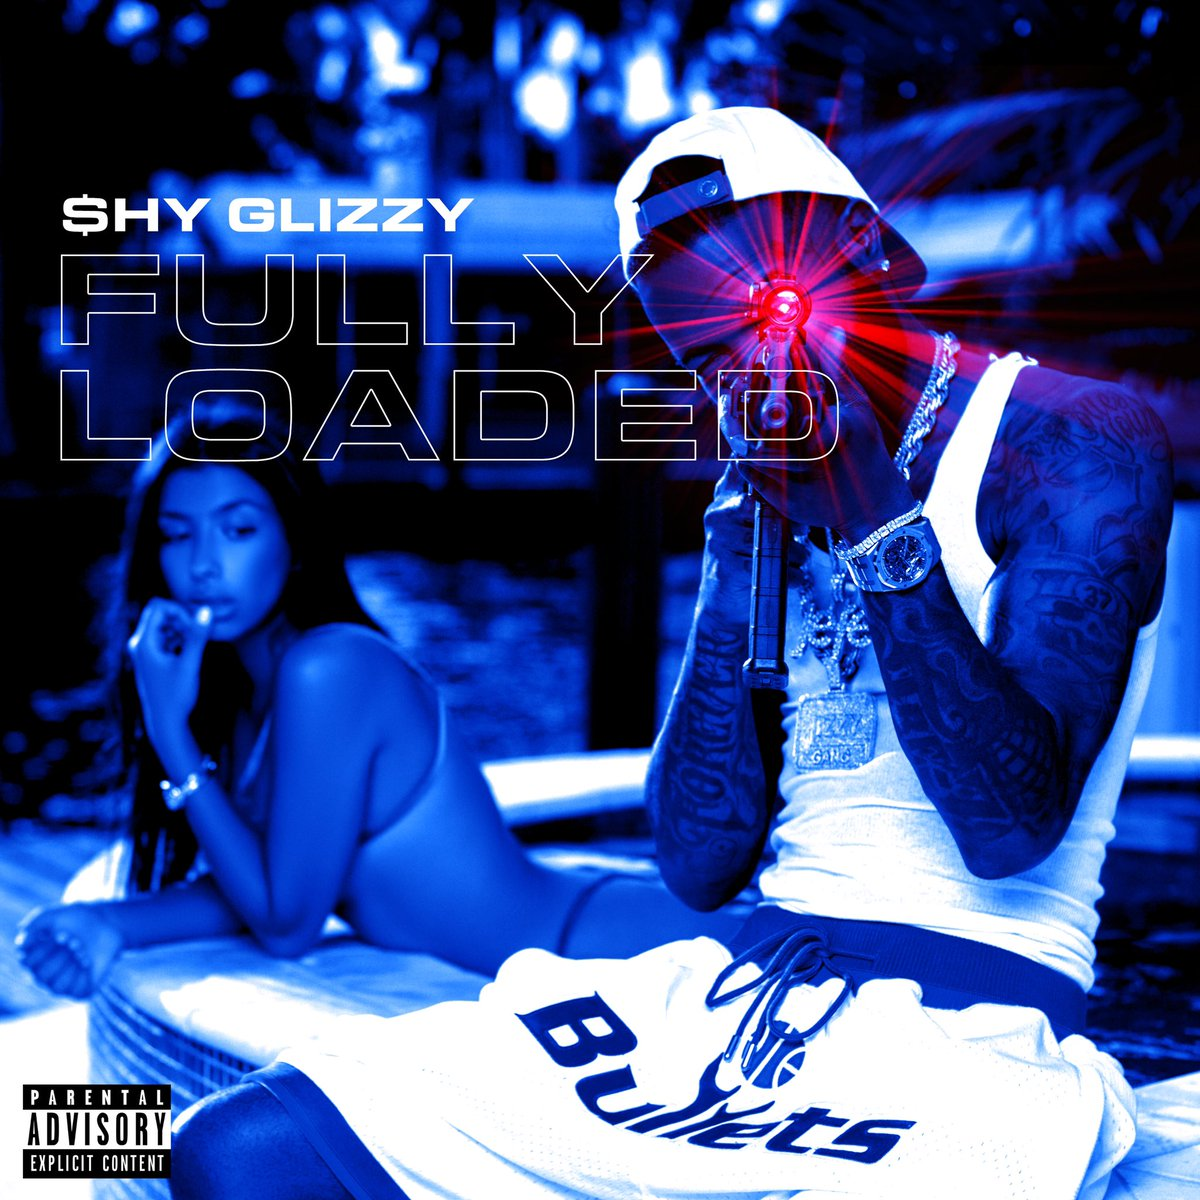 Download Shy Glizzy – Fully Loaded [2018][Pradyutvam] Torrent